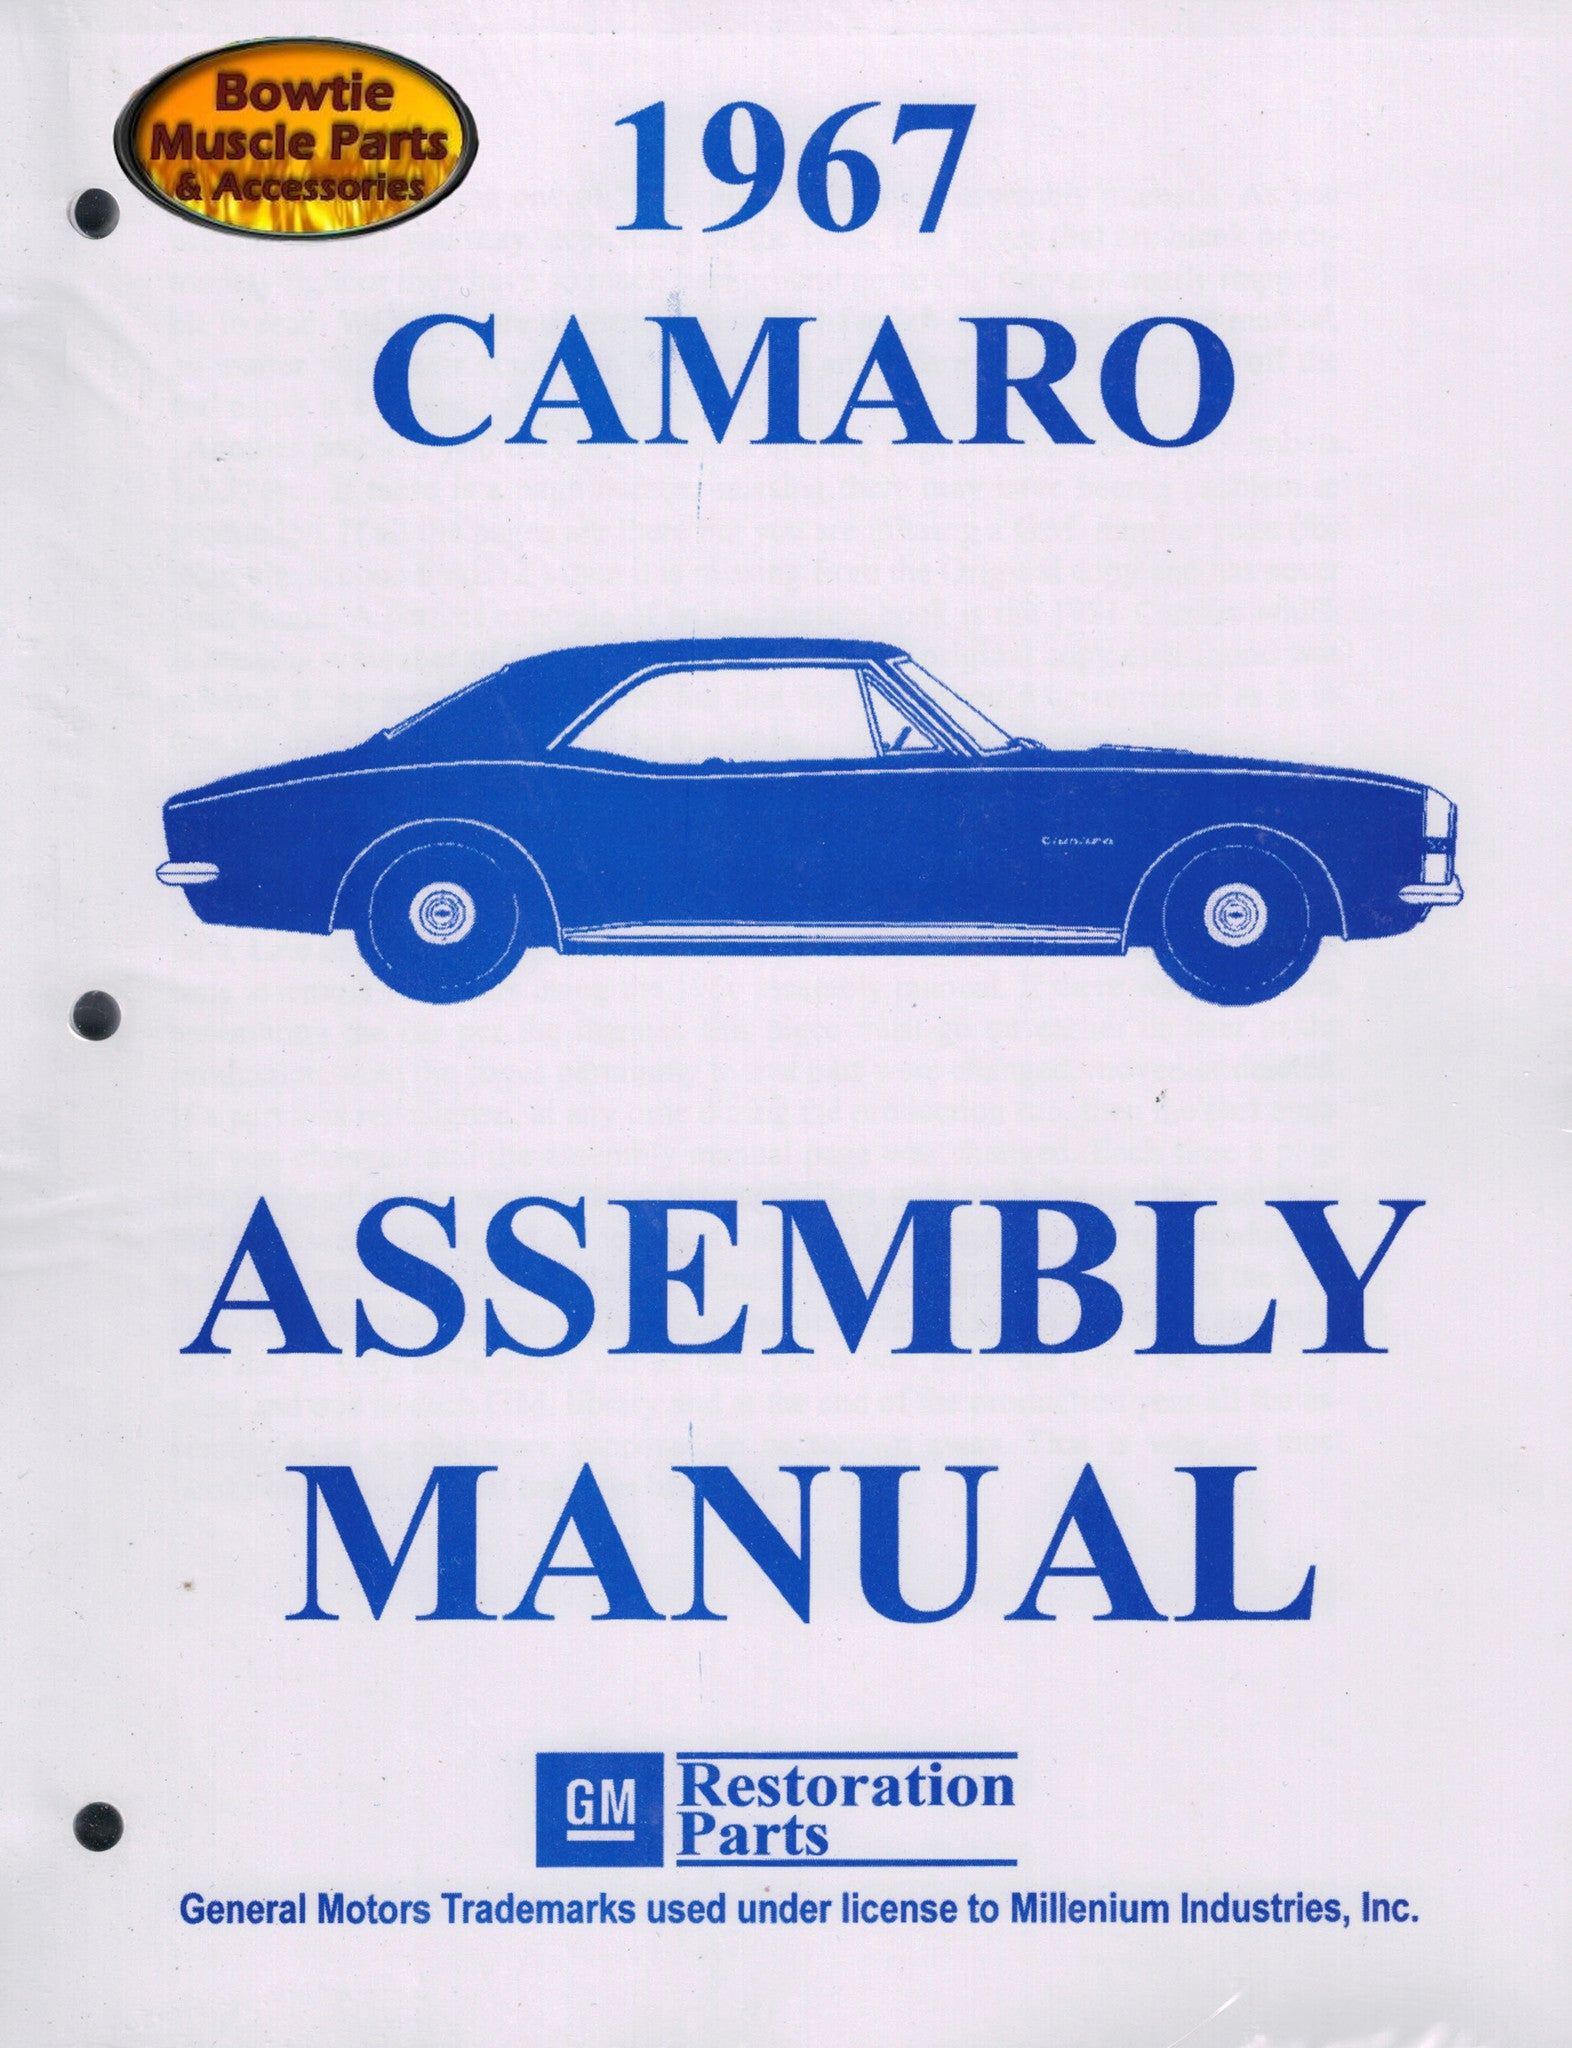 1967 67 camaro factory assembly manual z28 ss rs 418 pages rh bowtiemuscleparts com 65 Camaro 66 Camaro